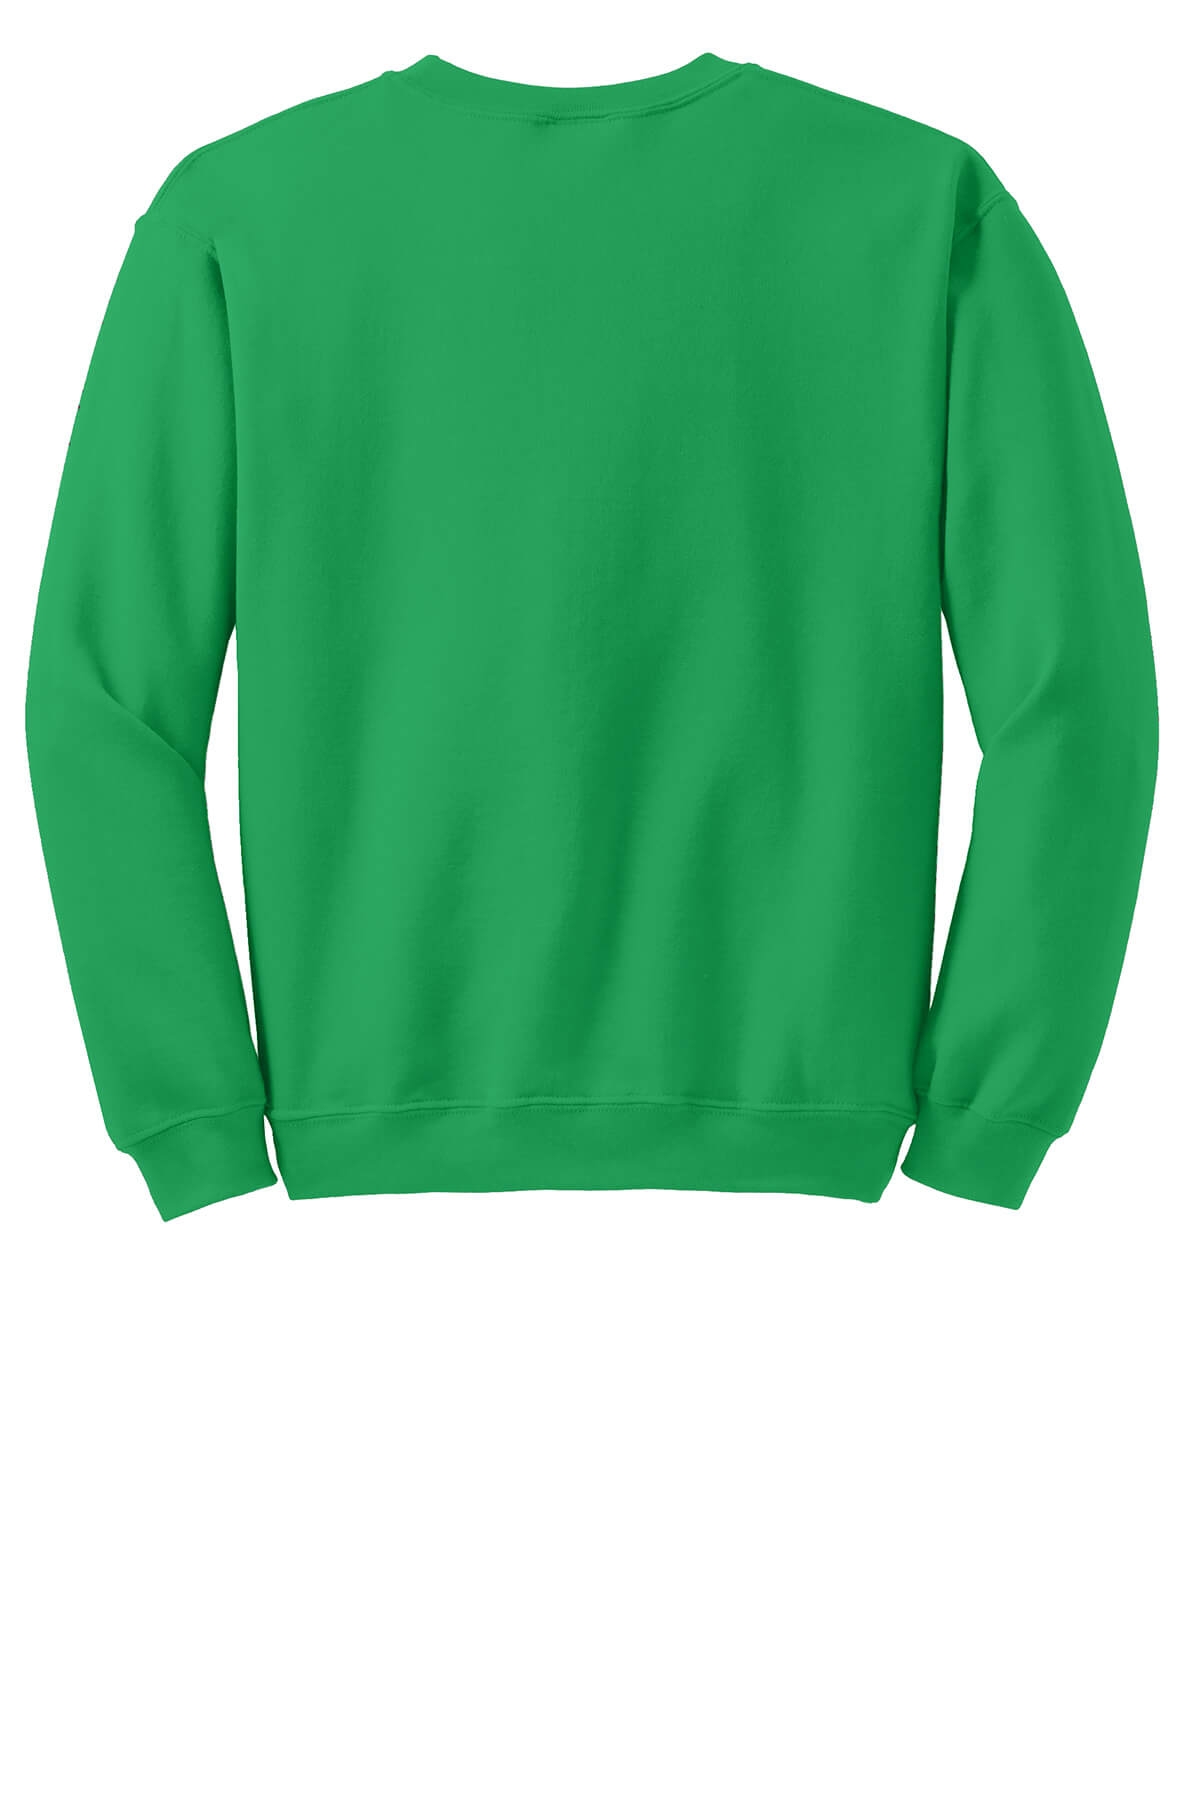 18000-irish-green-6